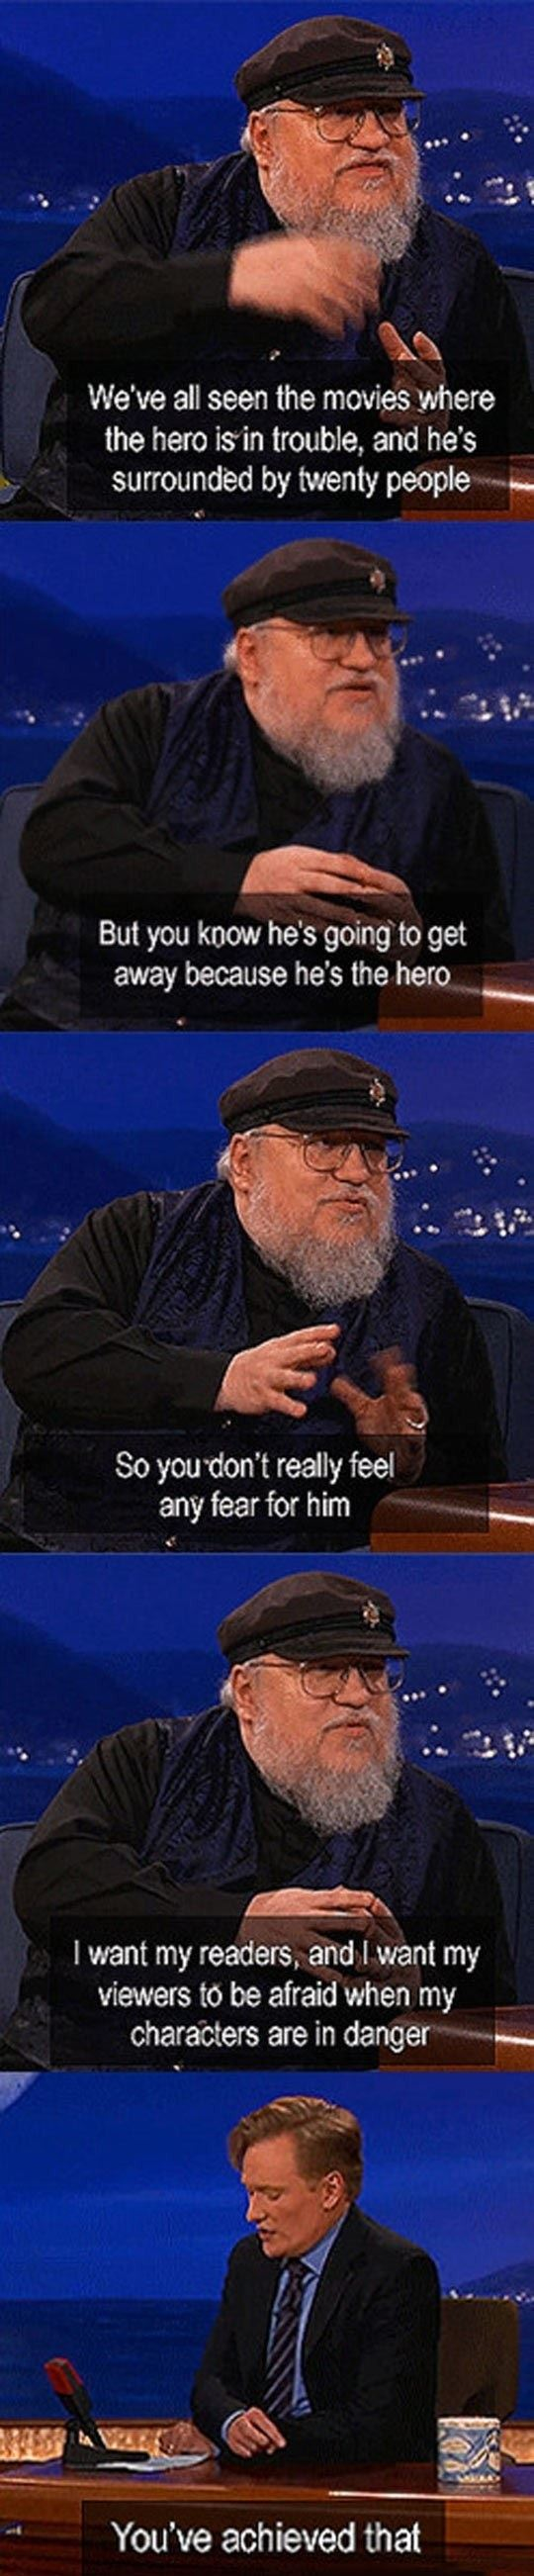 George R.R. Martin on Game of Thrones